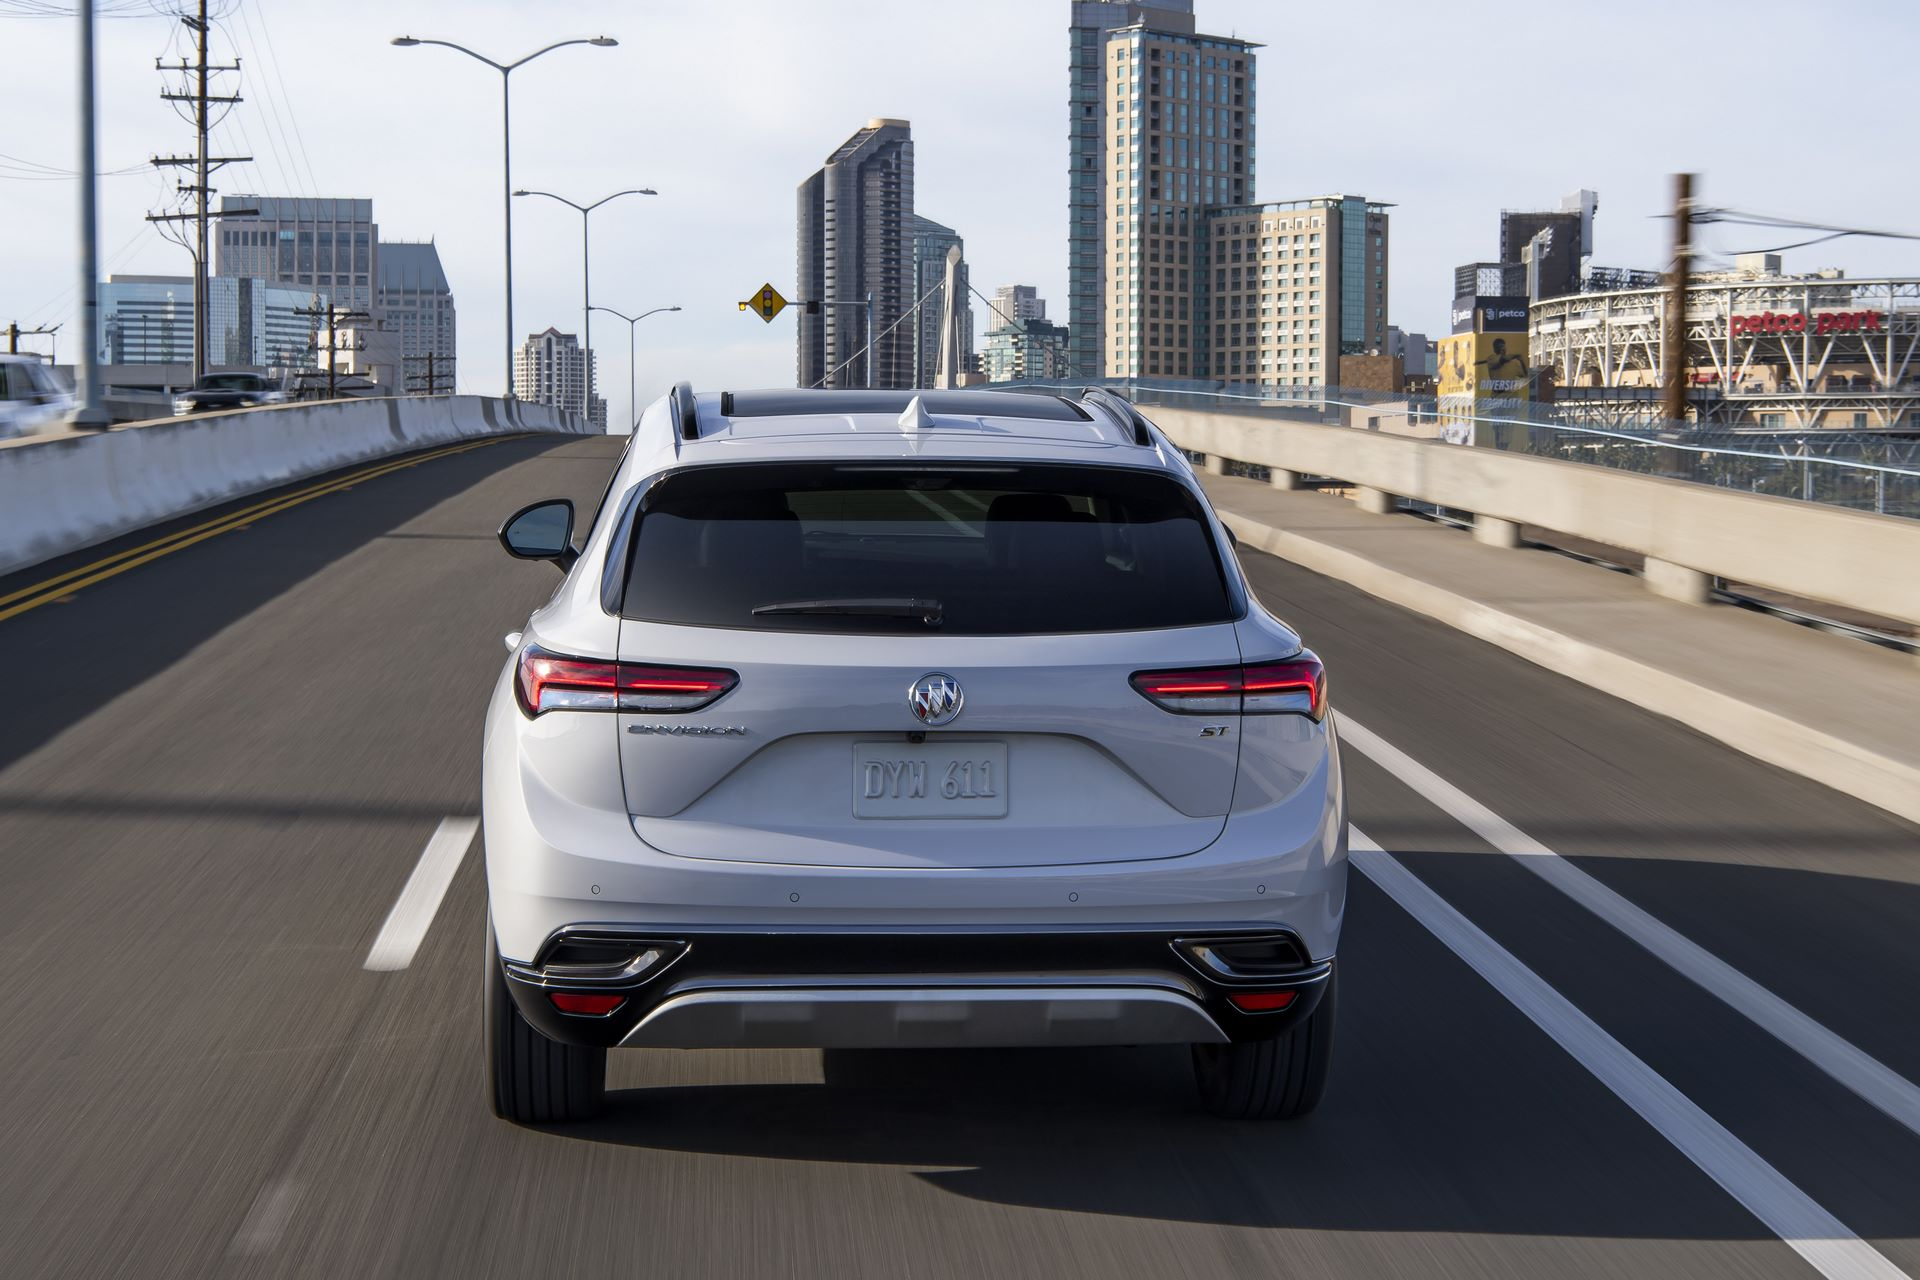 The 2021 Envision has a lower, wider stance with more athletic proportions to appeal to buyers who like the look of a car but want the functionality of an SUV.